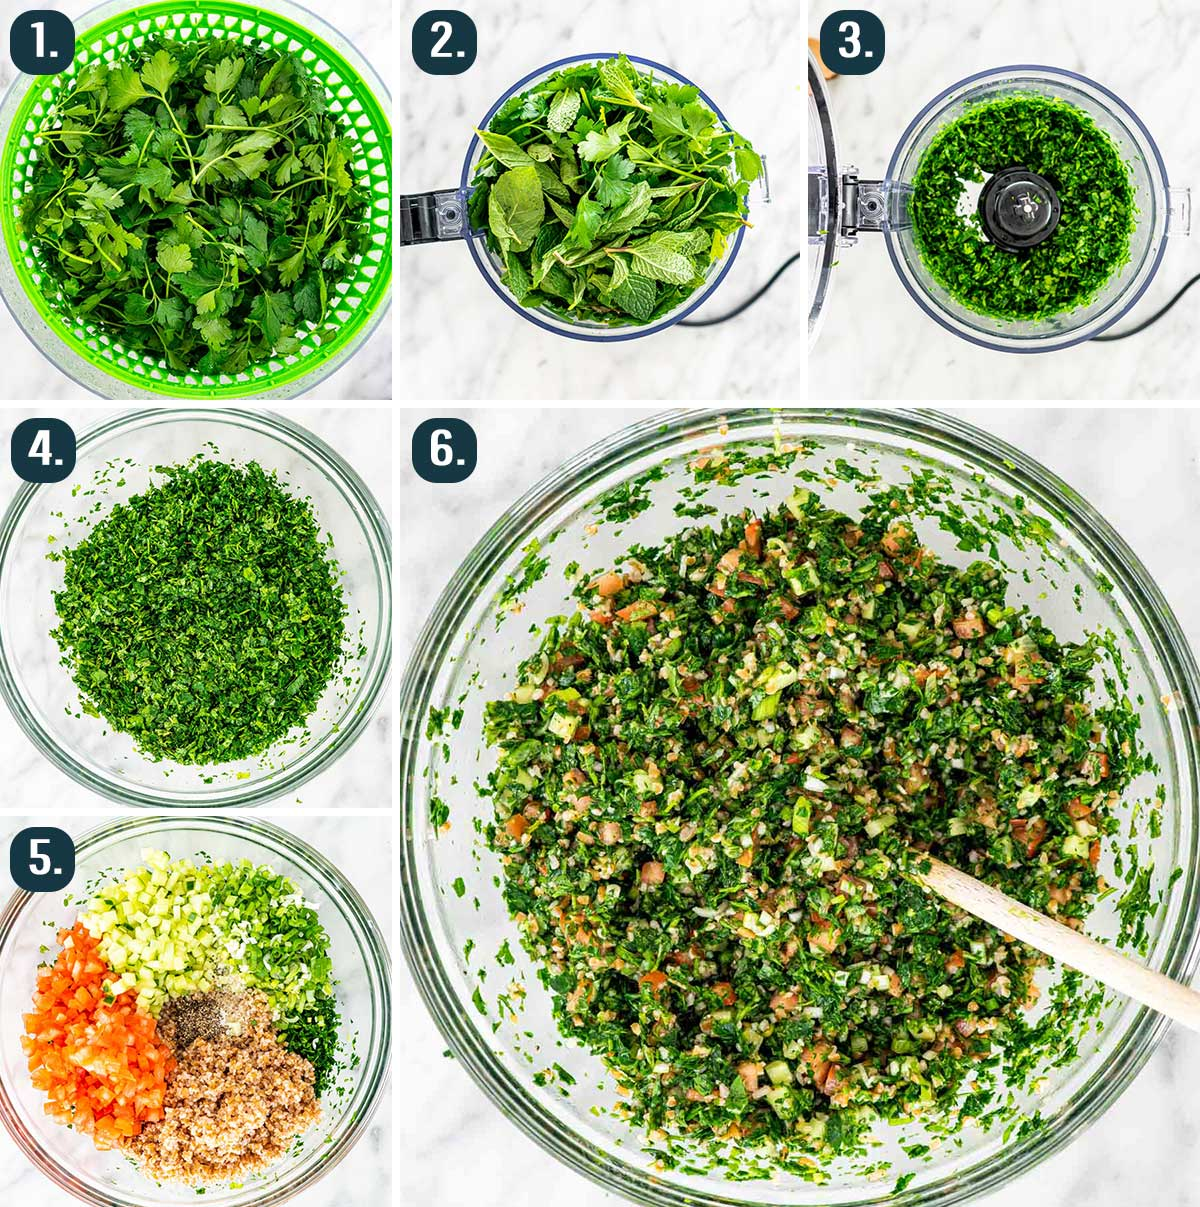 process shots showing how to make tabouli salad